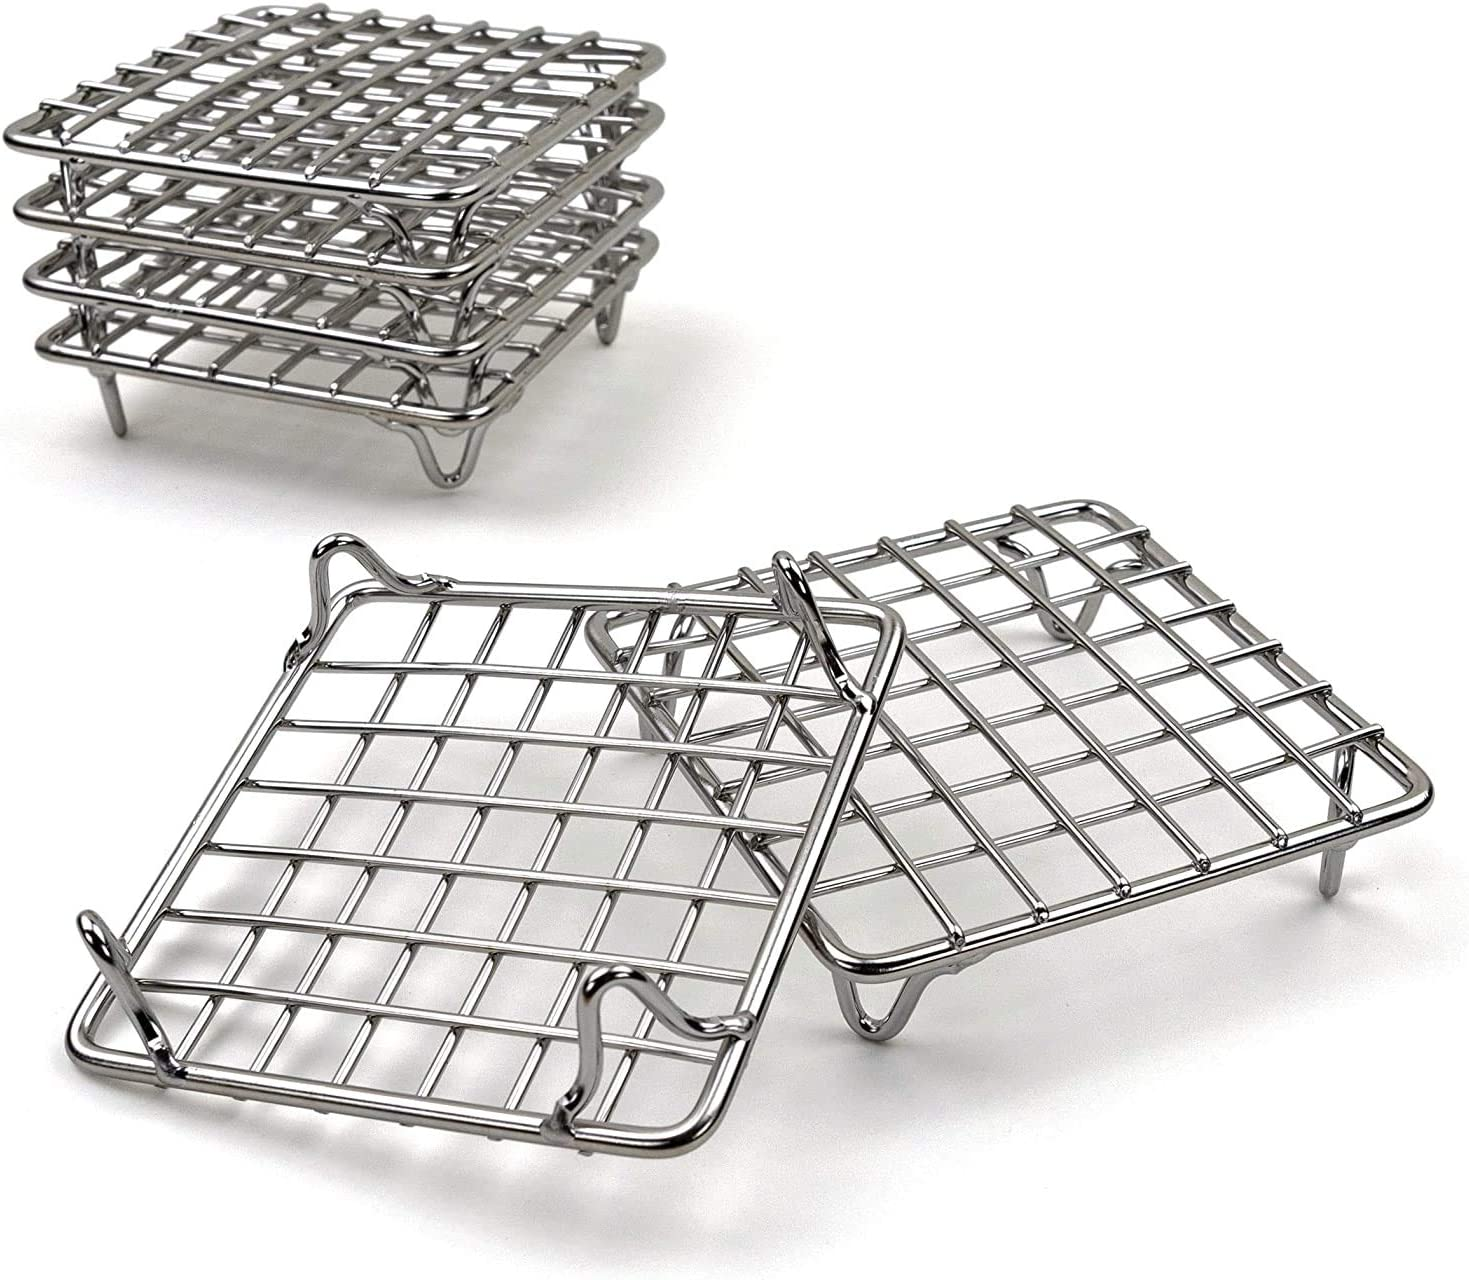 Metal Trivet Stand for Cooking with Pots Steaks Cupcakes Hot Dishes Wire Racks for Cookies Cakes Set of 6 Stainless Steel Mini Baking Cooling Baking Rack Pans